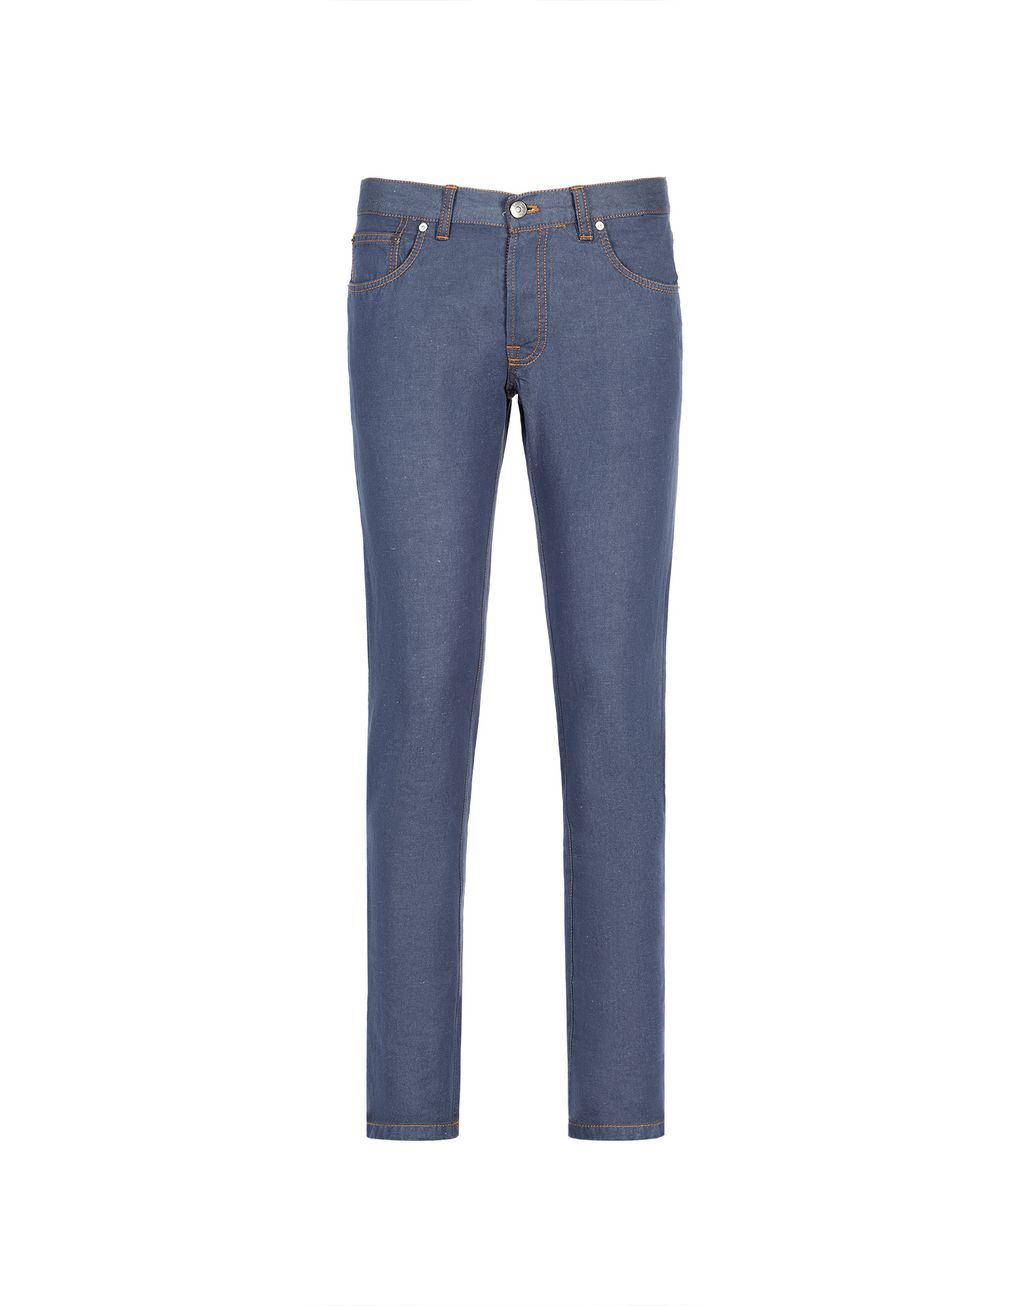 BRIONI Bluette Slim-Fit Cotton and Linen Aneto Jeans  Denim [*** pickupInStoreShippingNotGuaranteed_info ***] f